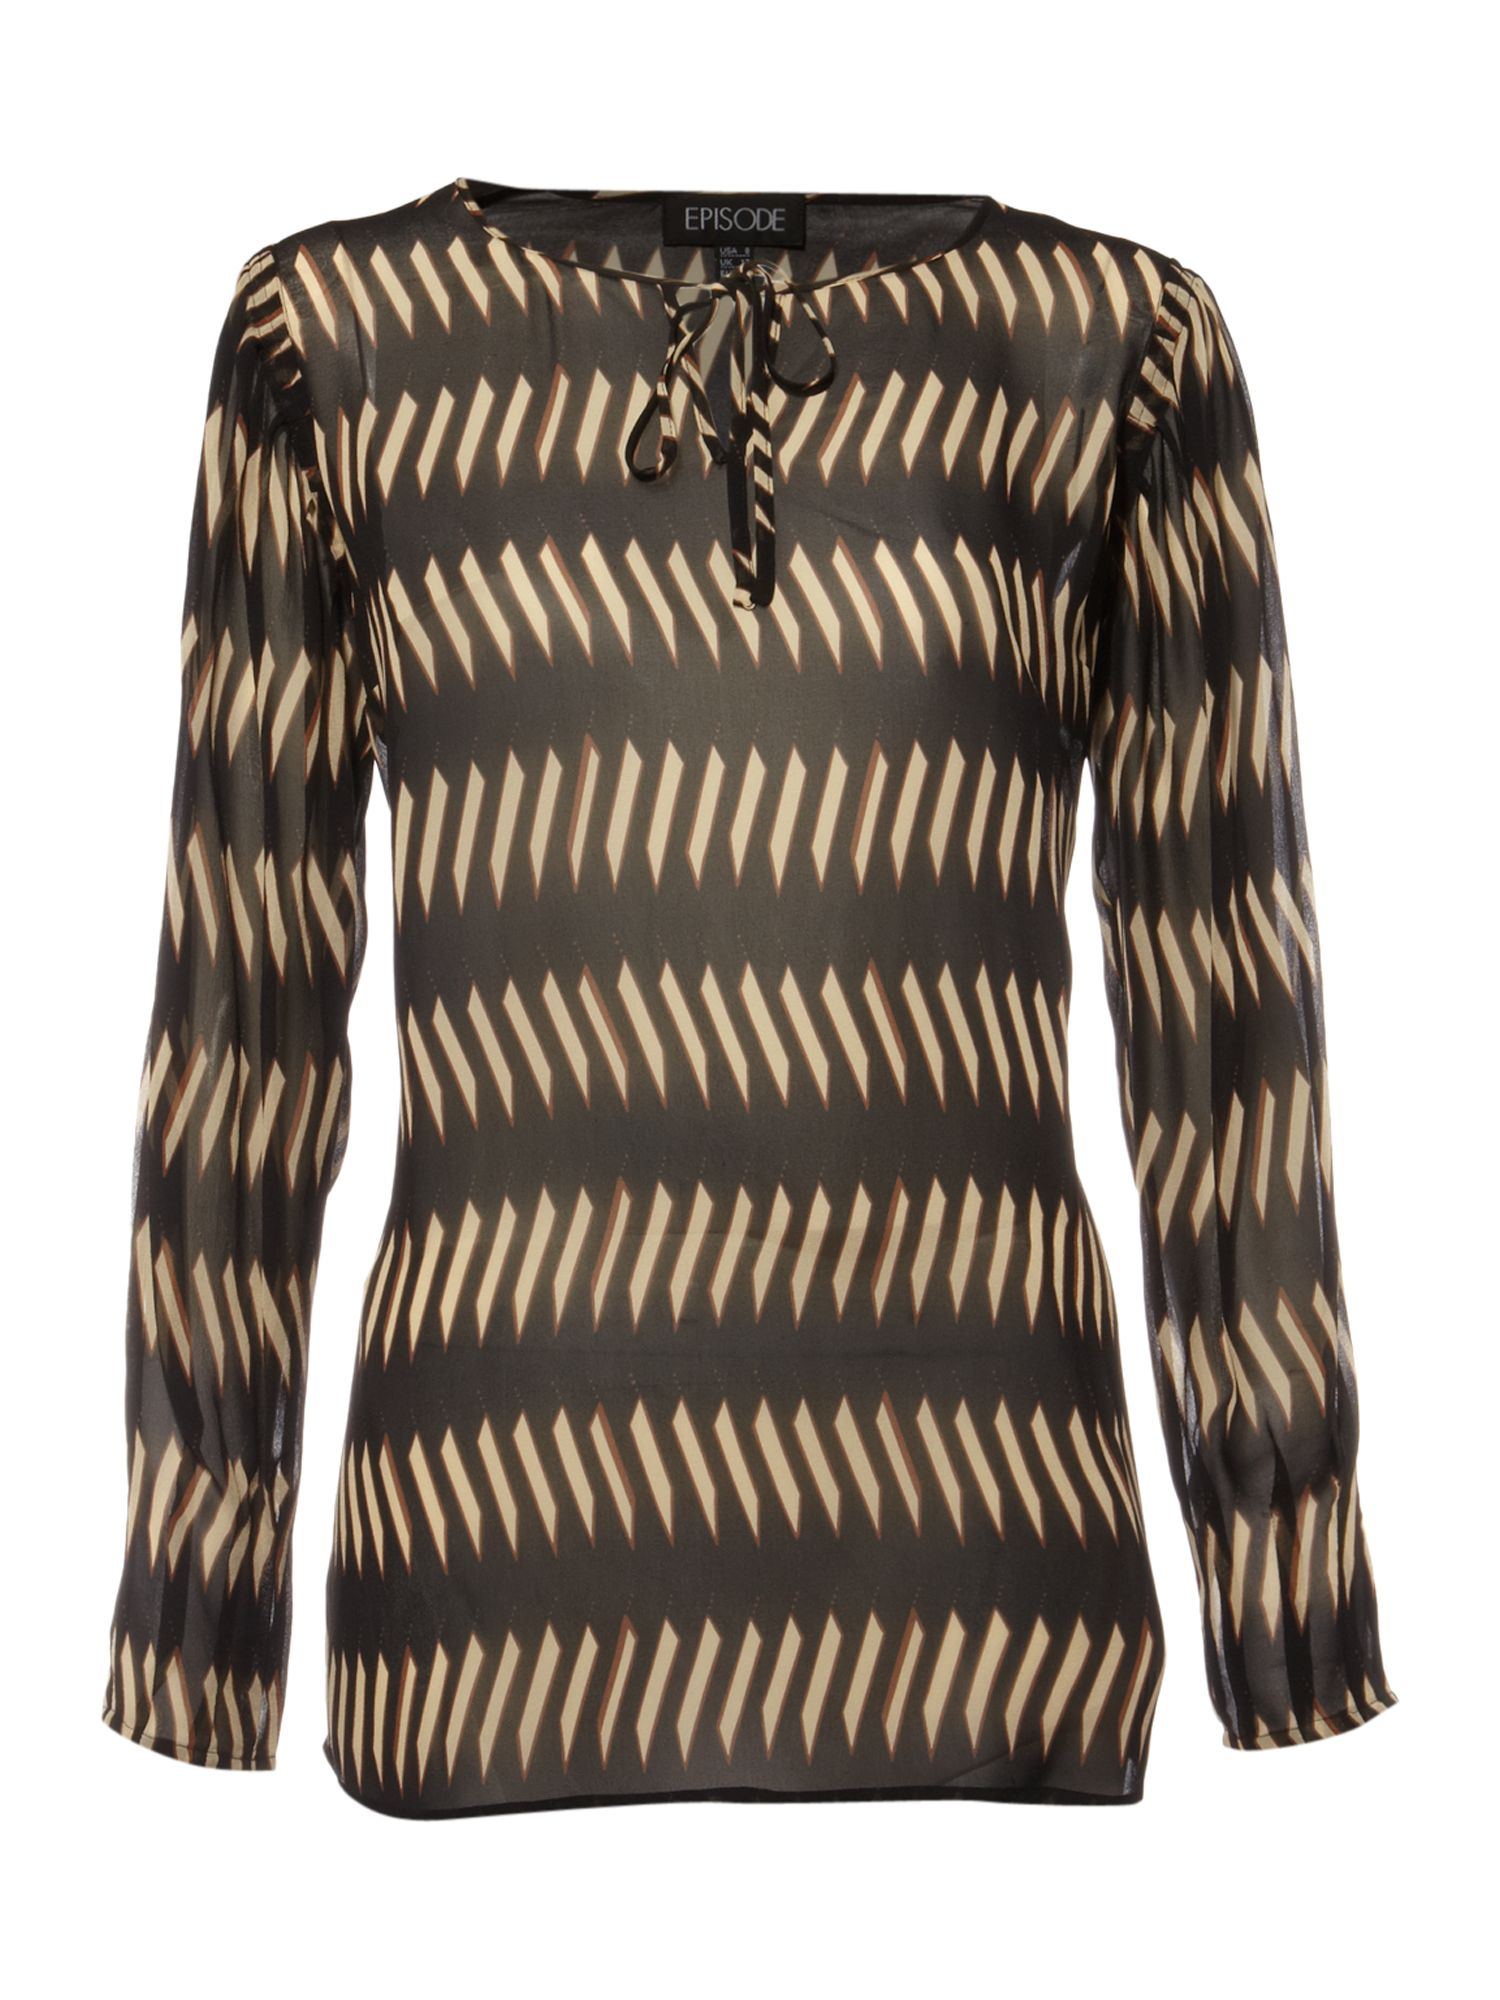 Episode Silk ikat tie tunic blouse - Black product image